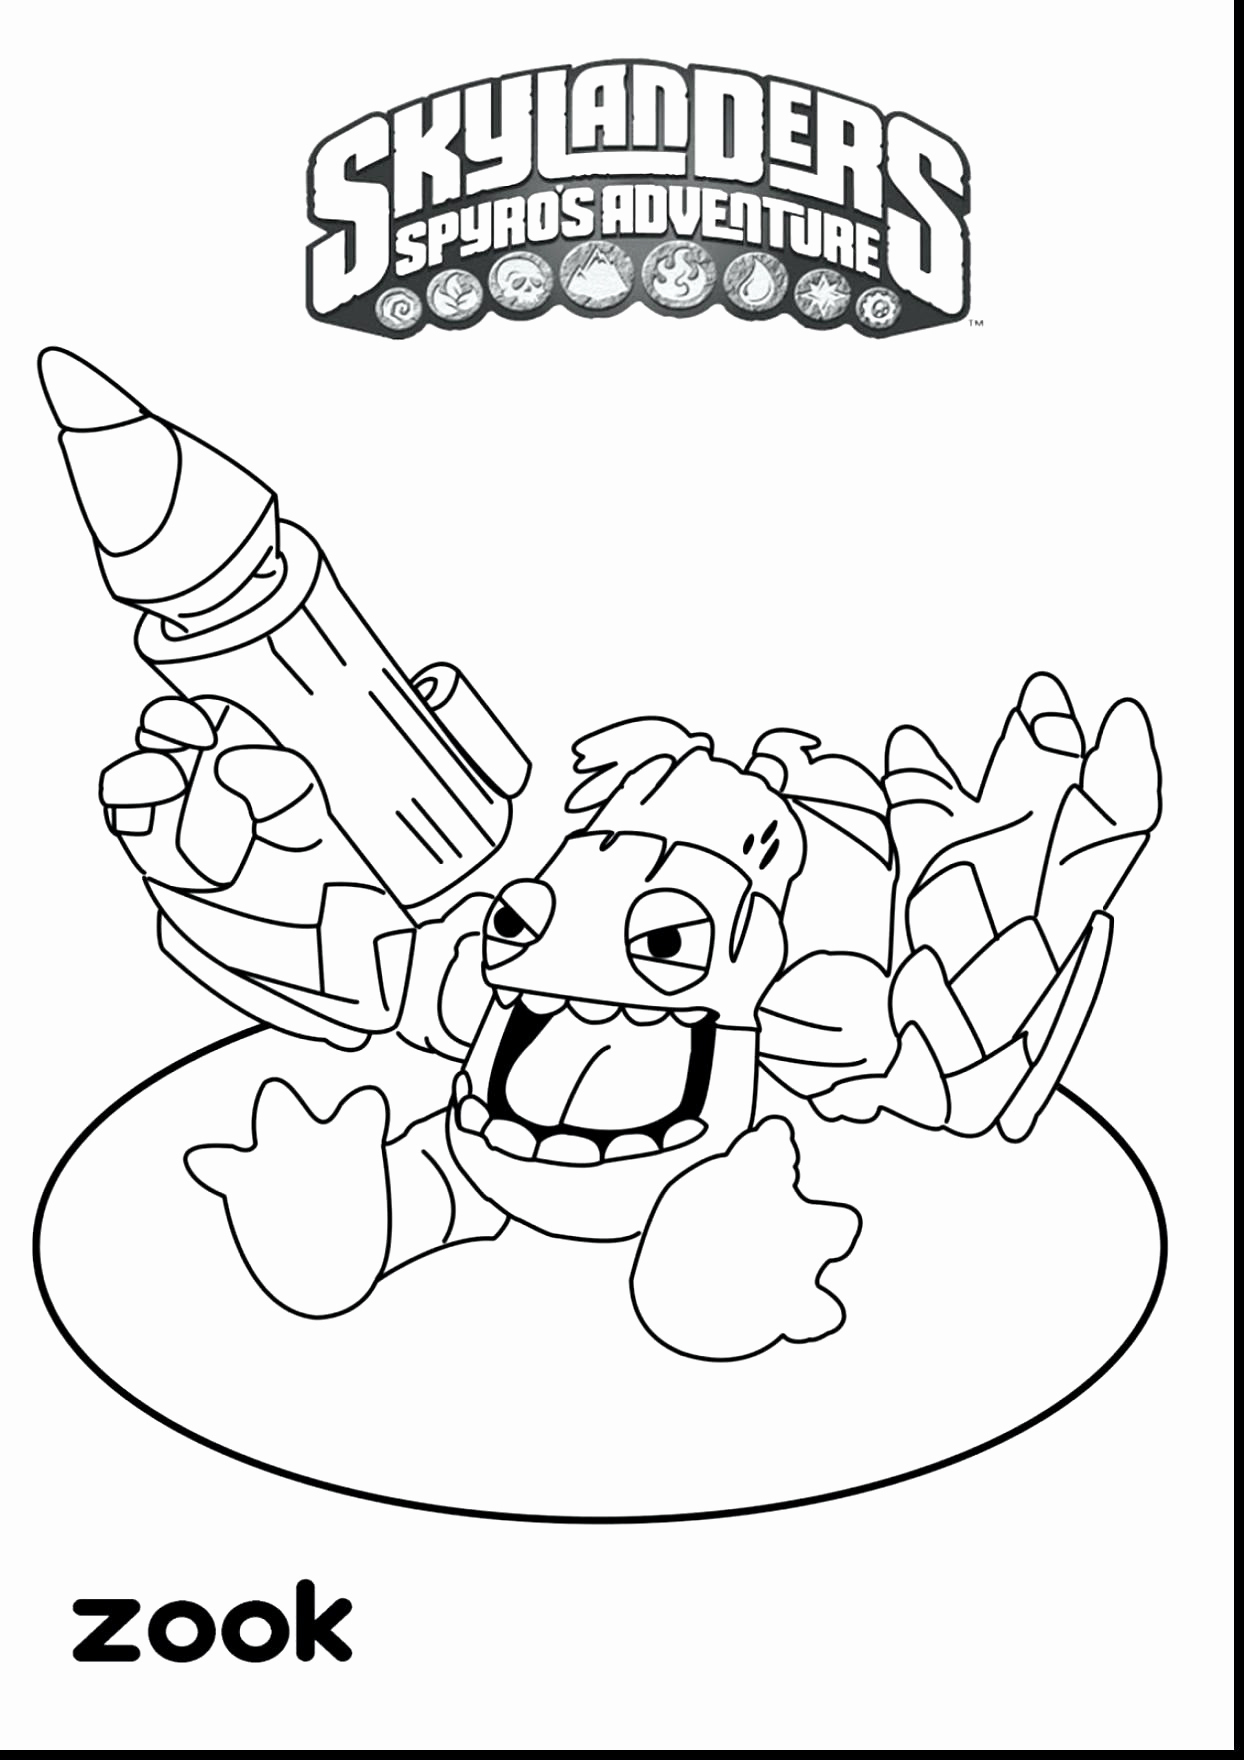 special olympics coloring pages Collection-8 X 10 Printable Coloring Pages Elegant Safari Coloring Pages New Print Color Pages Printable Coloring 13-t